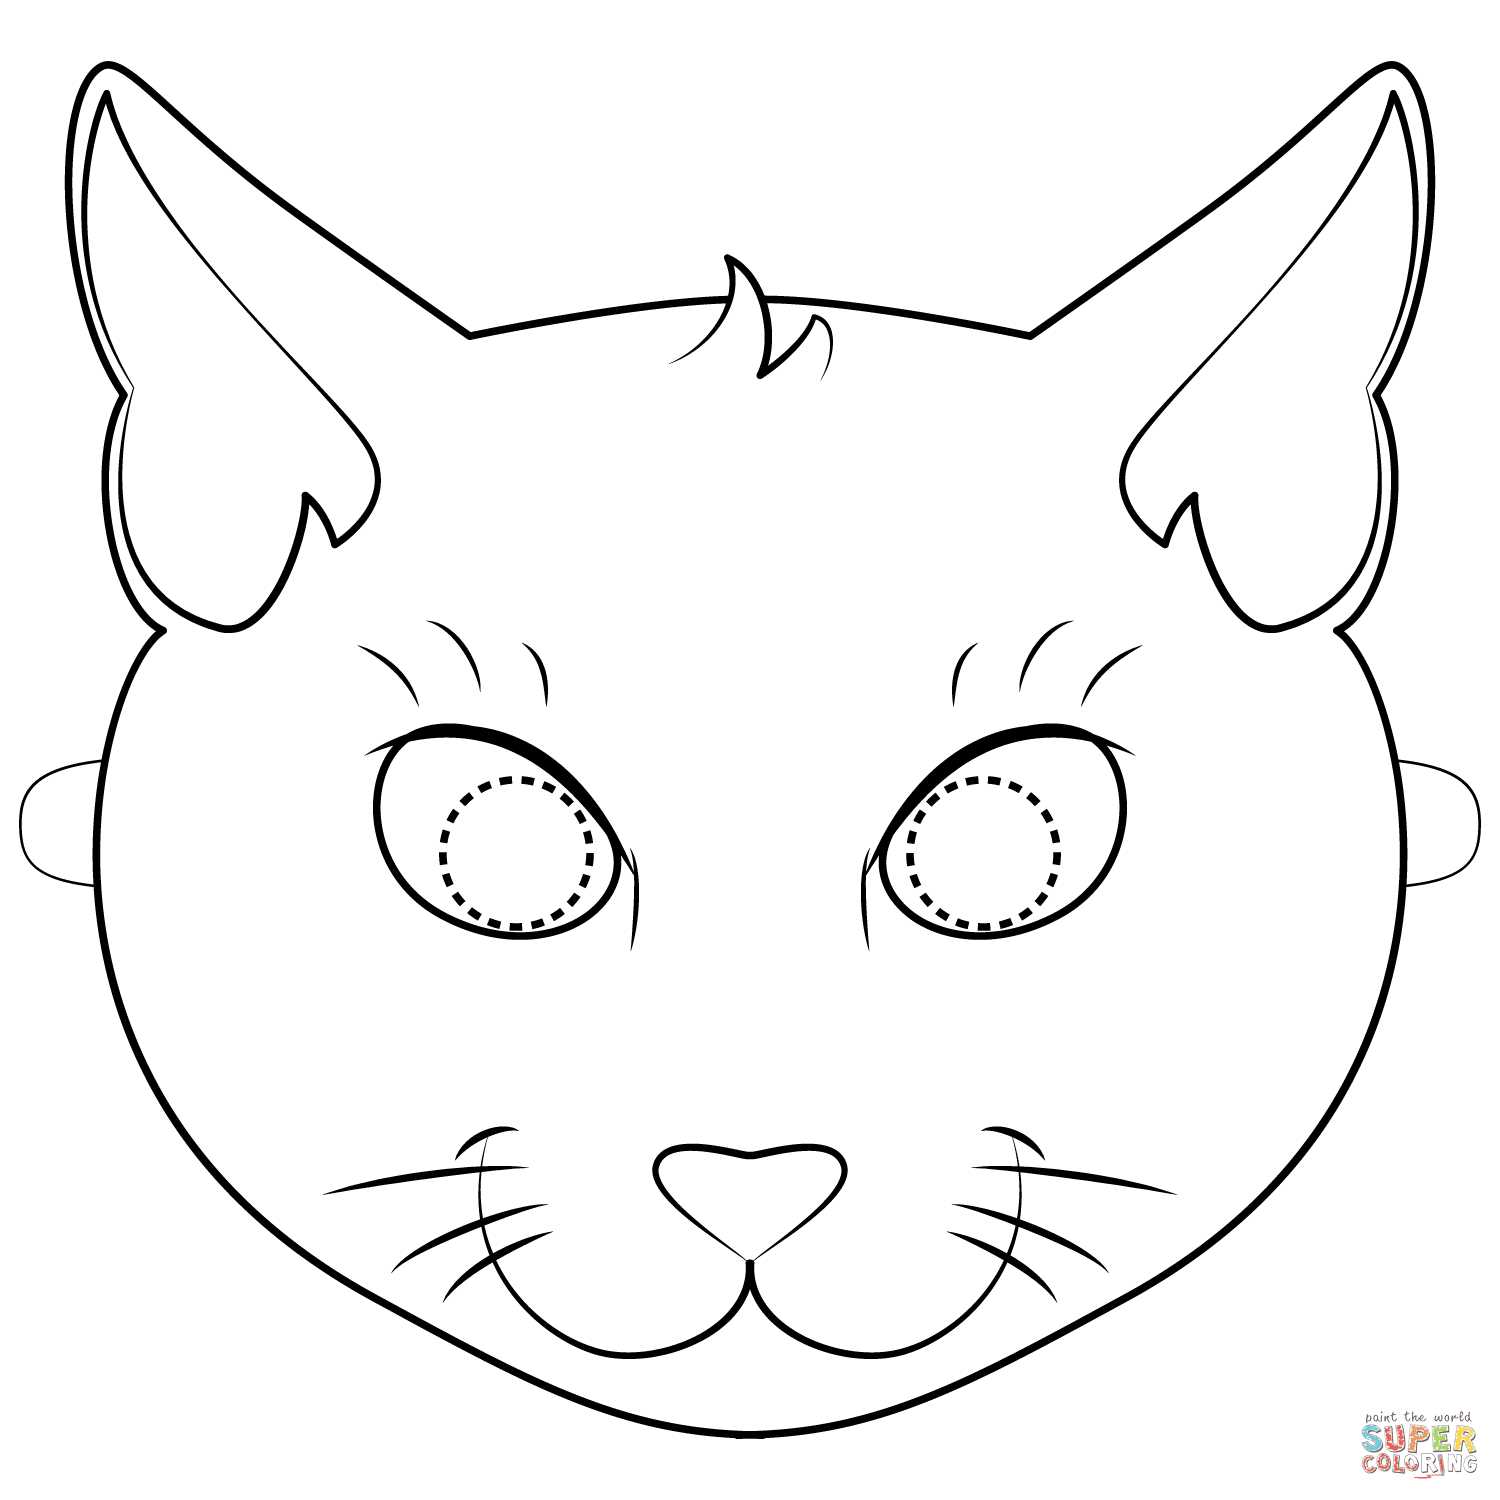 Black Cat Mask coloring page   Free Printable Coloring Pages